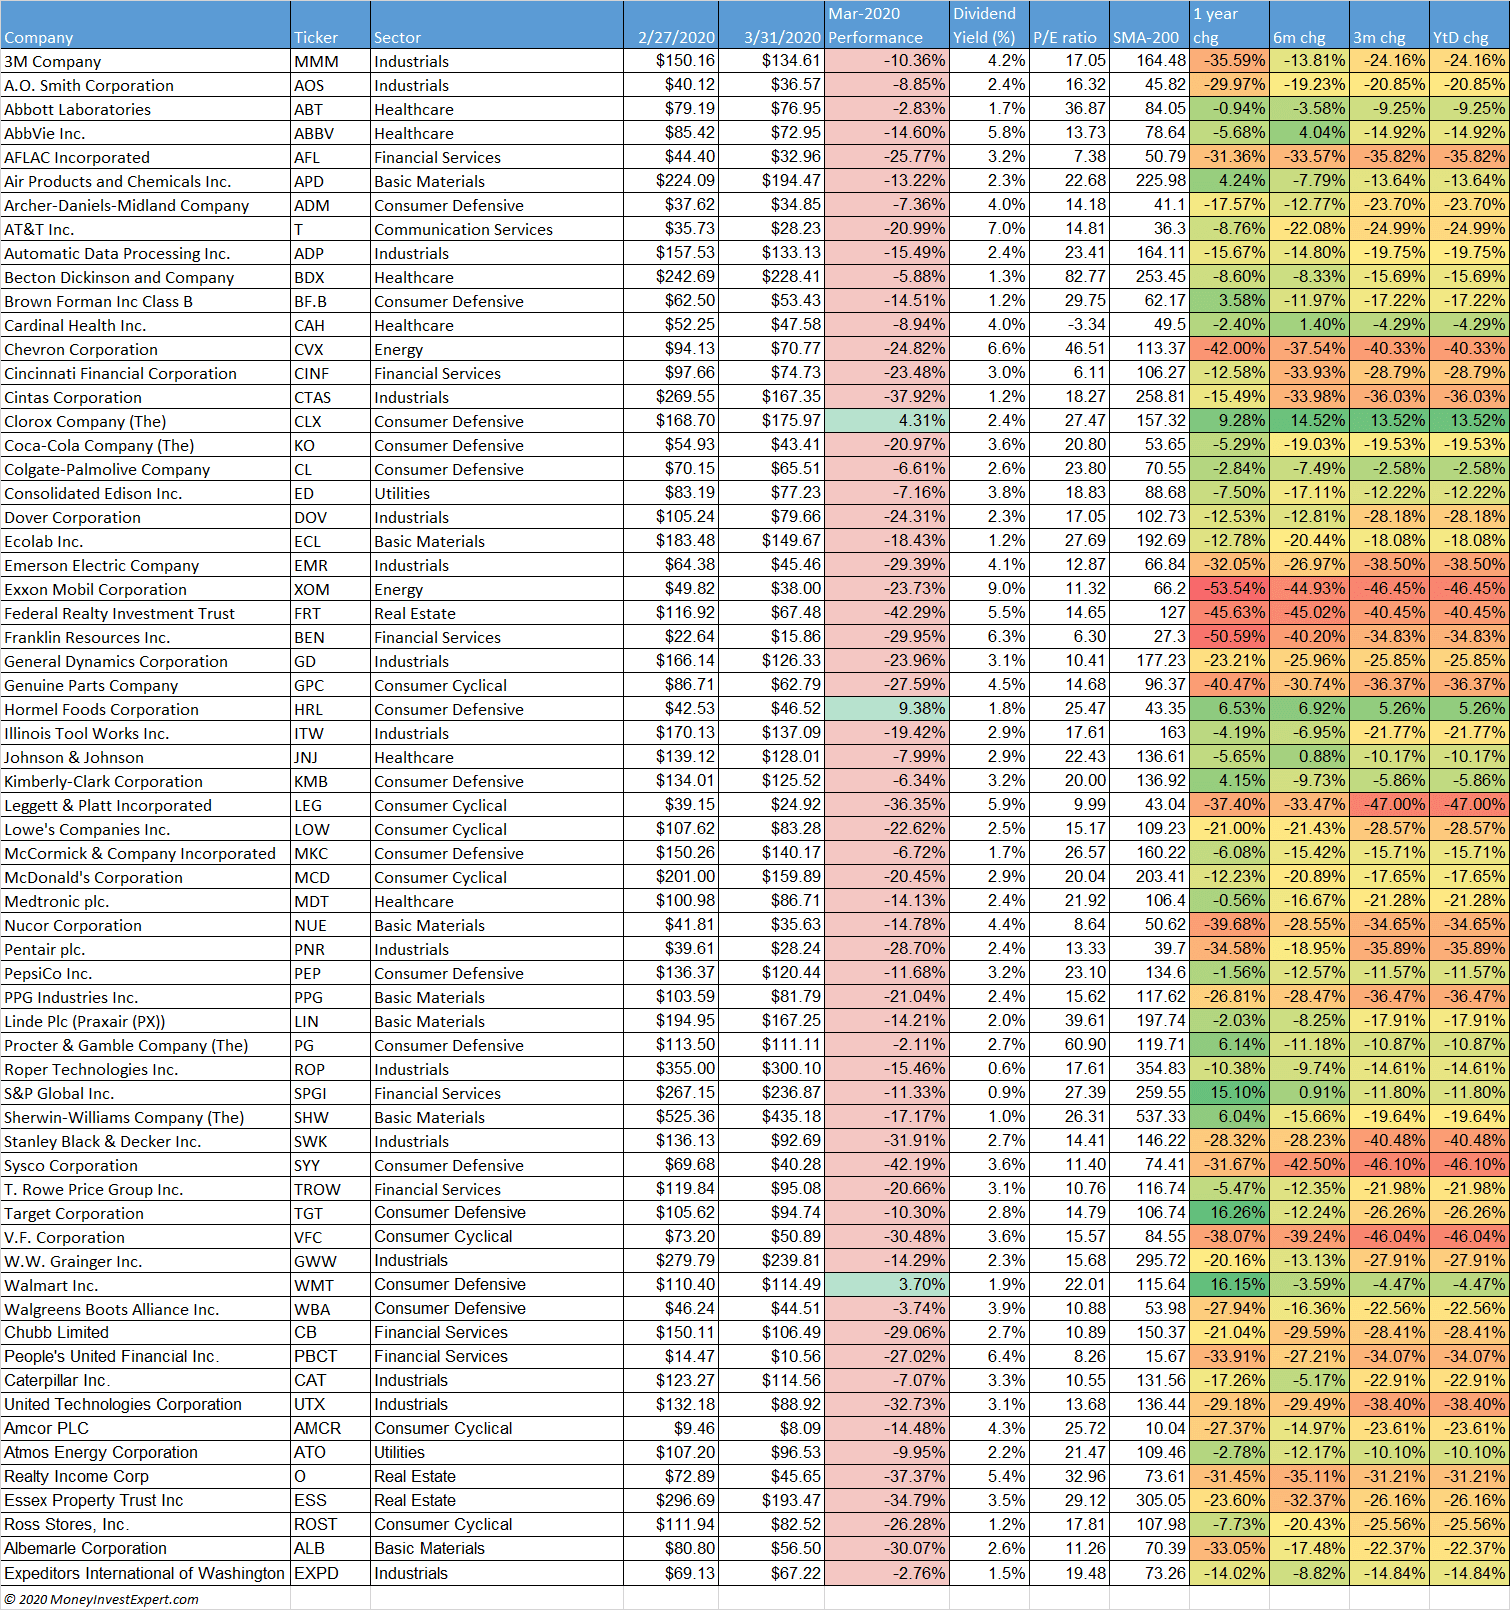 dividend-aristocrats-performance march 2020